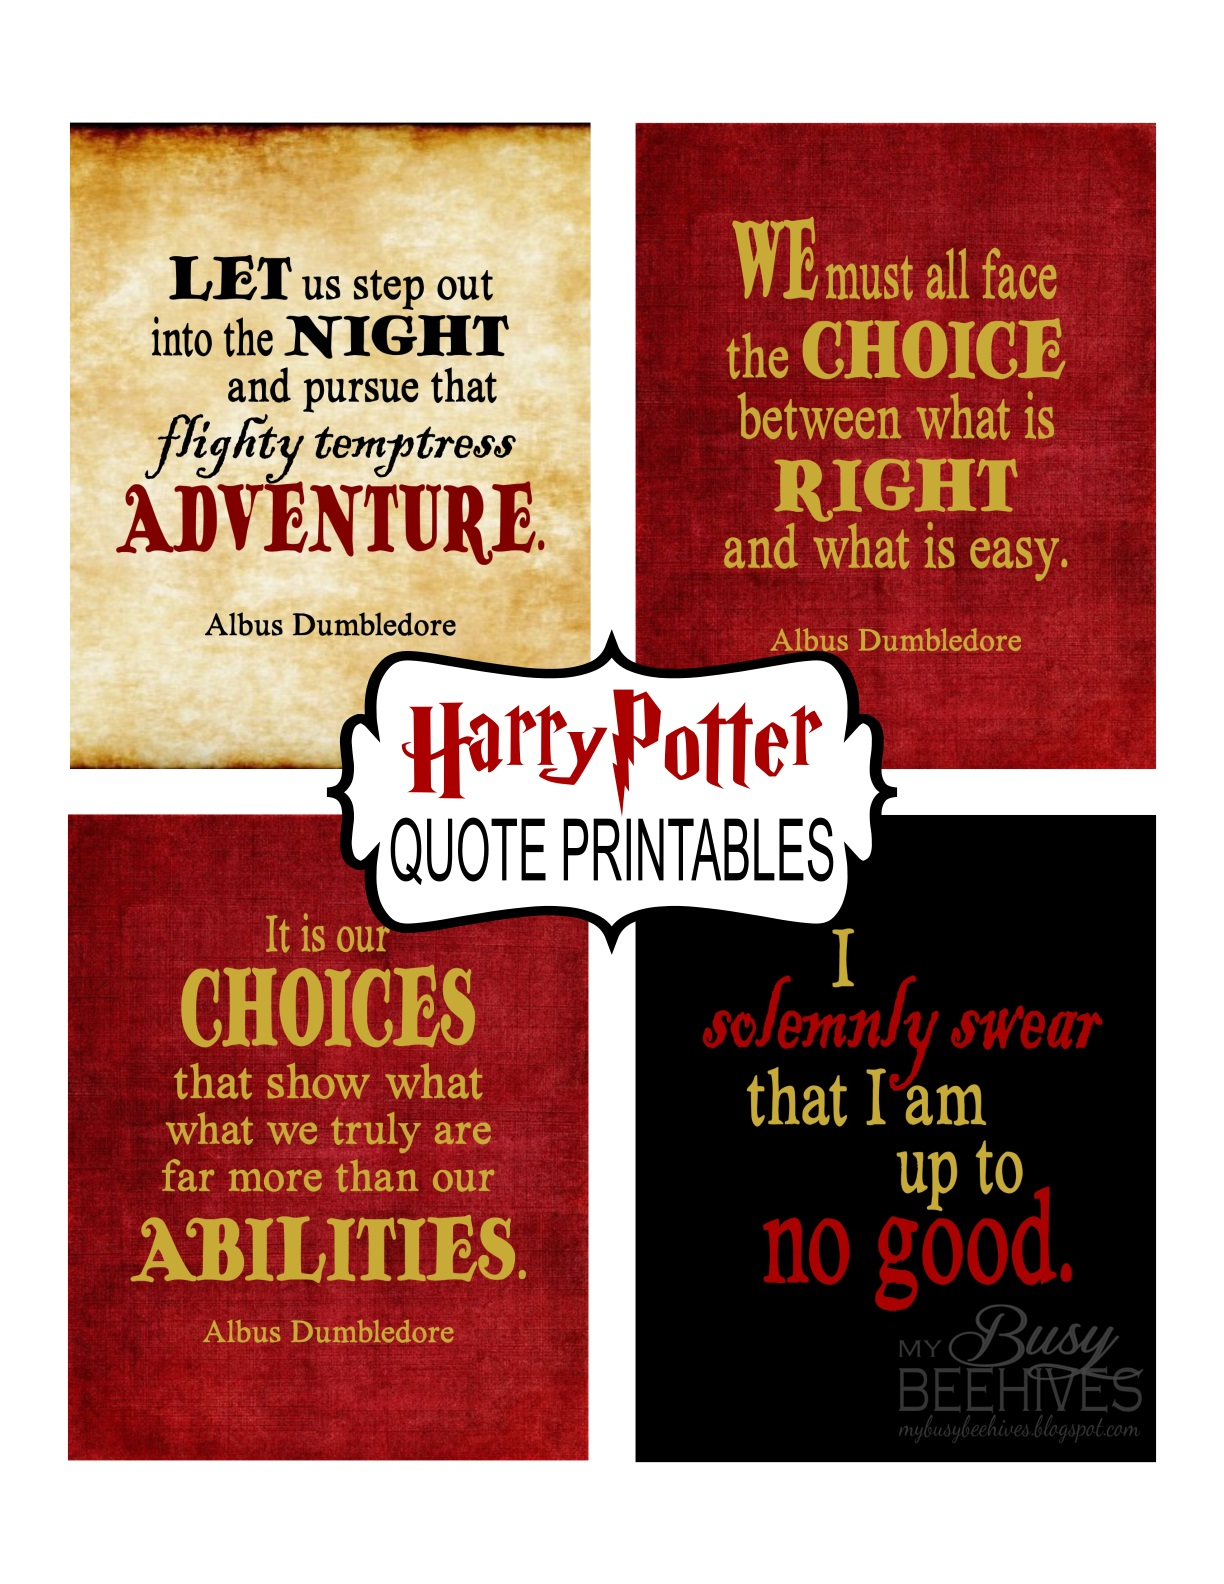 My Busy Beehives Harry Potter Quote Printables